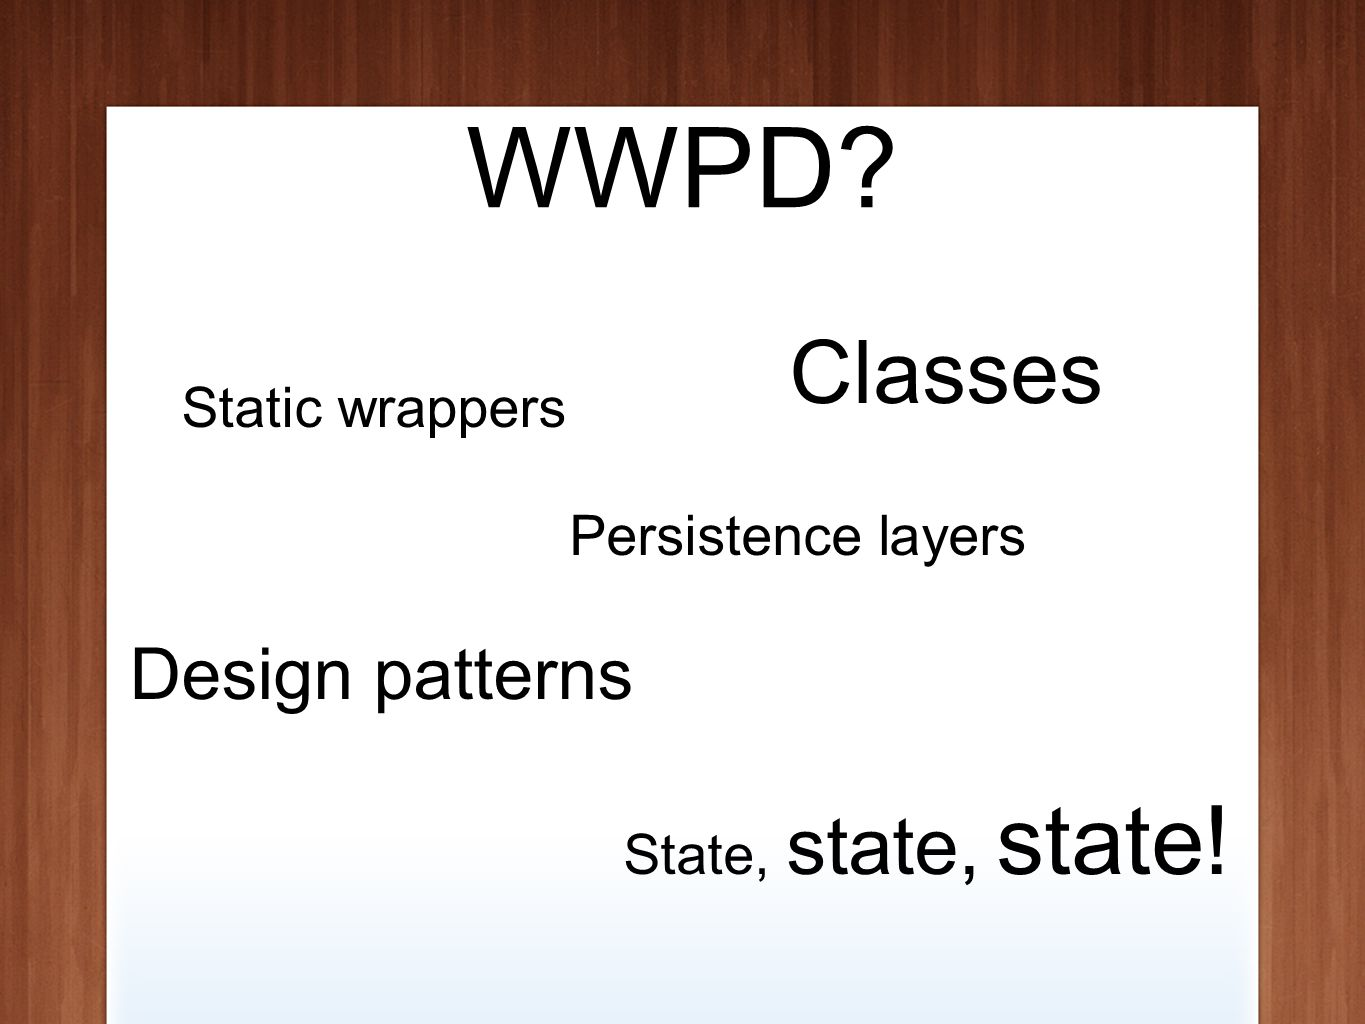 WWPD Classes Static wrappers State, state, state! Design patterns Persistence layers